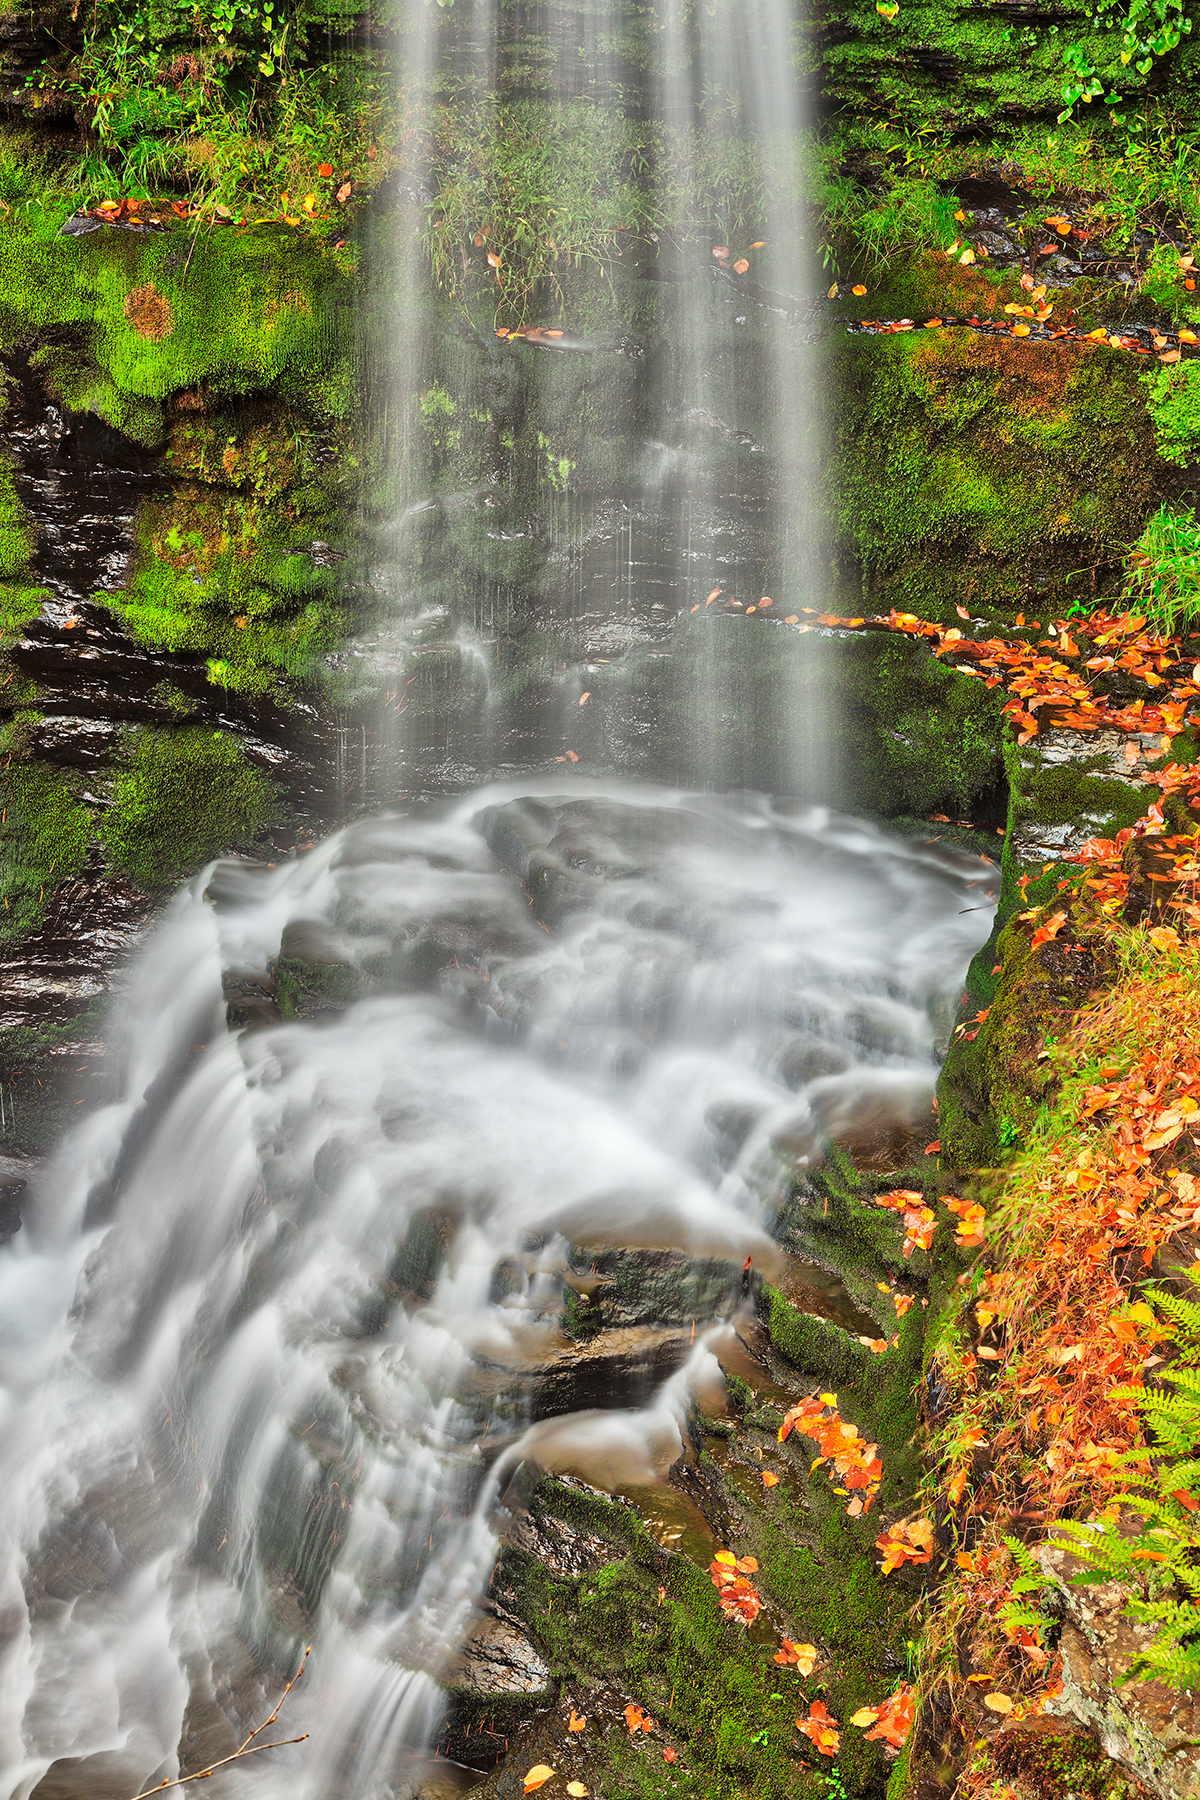 Fulmer autumn moss falls - hdr photo